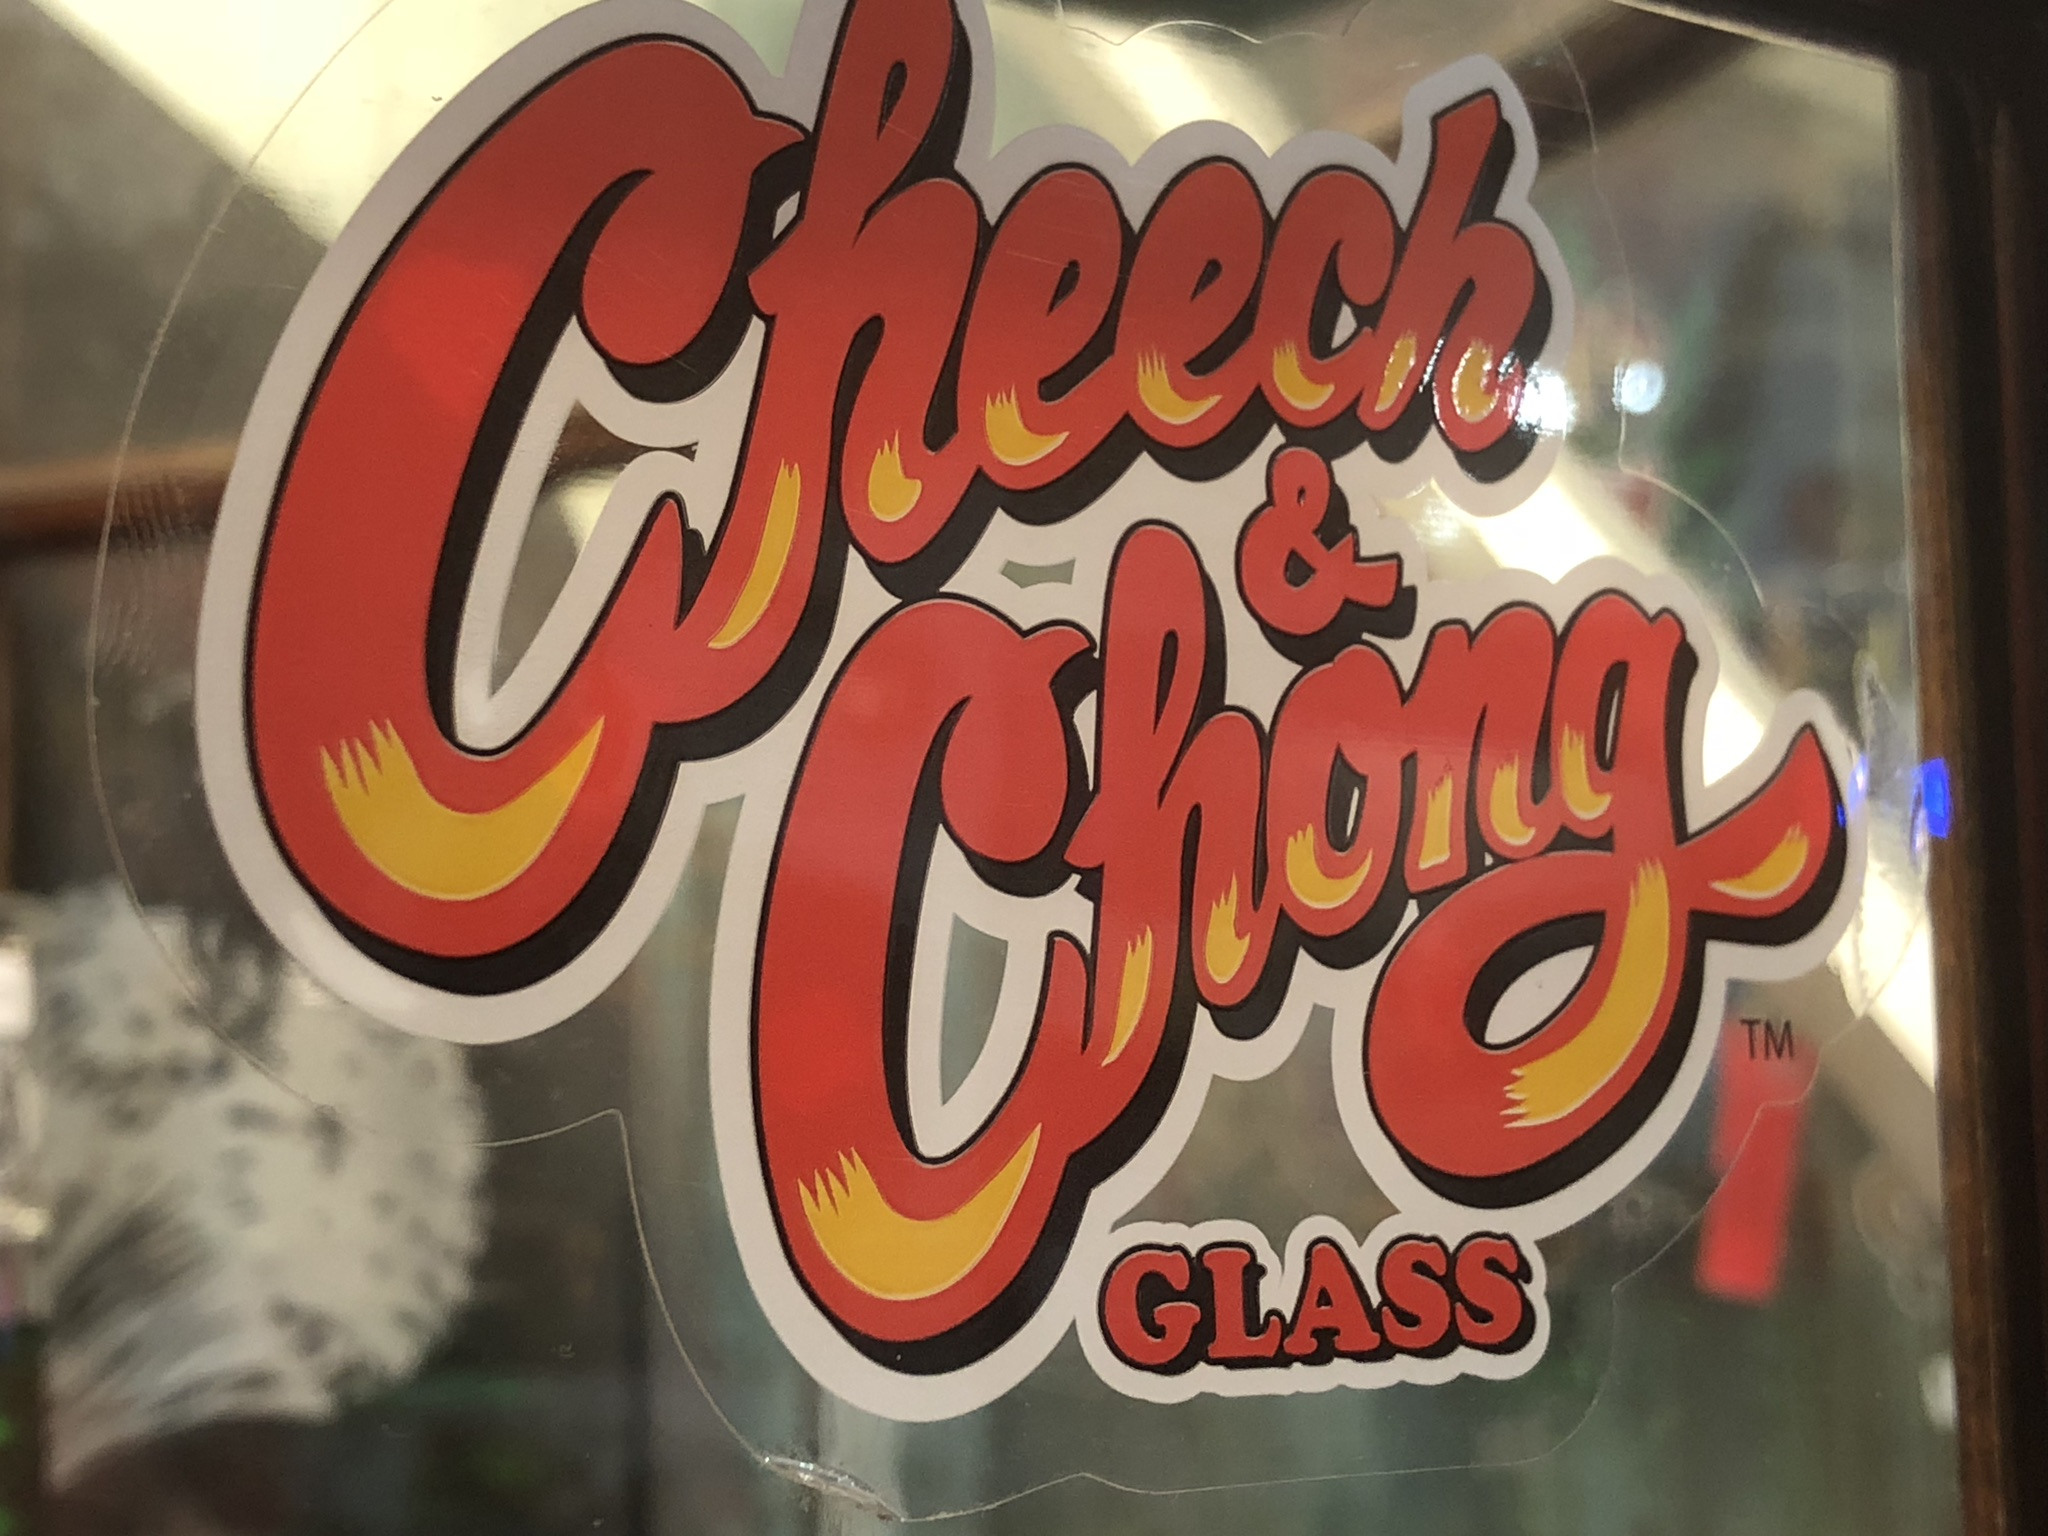 Officially licences cheech and chong glassware